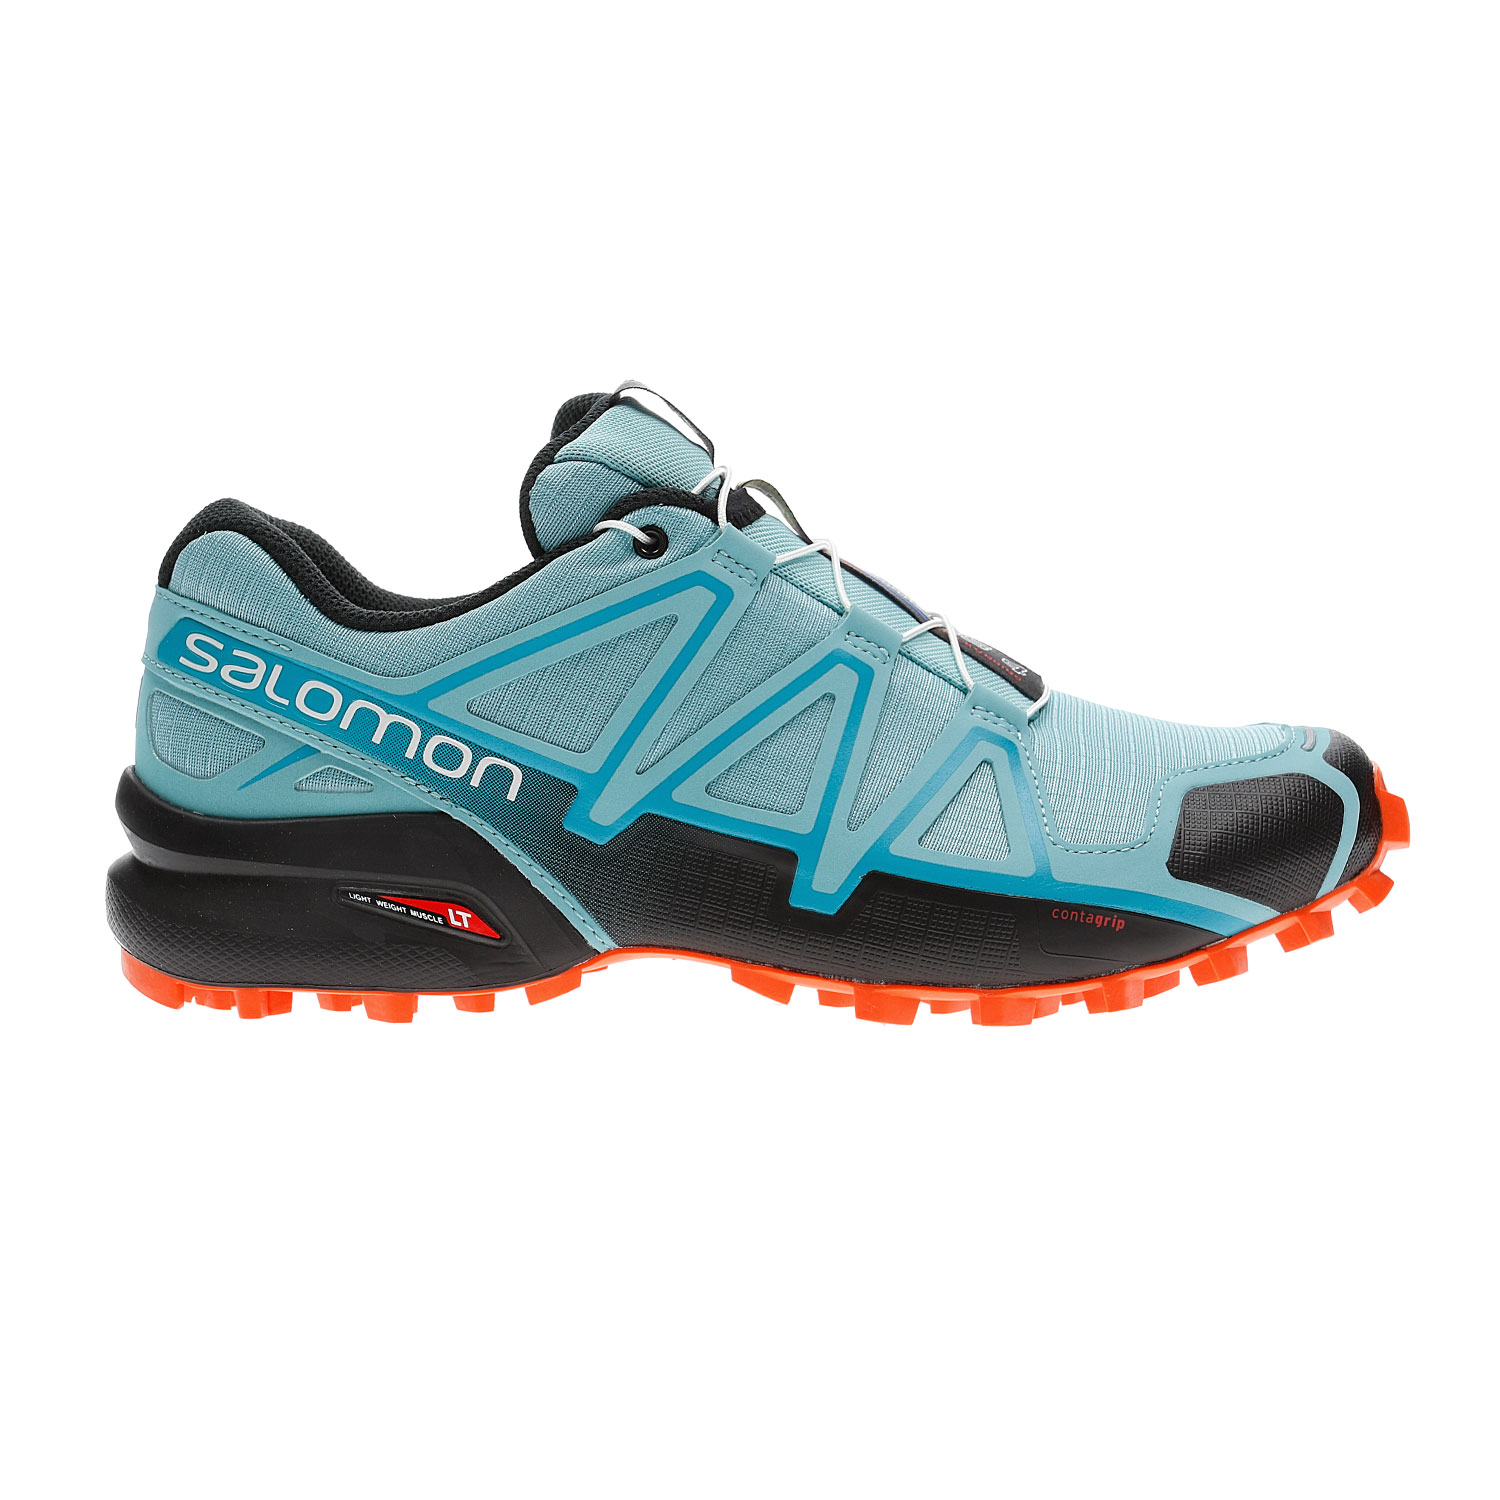 Salomon Speedcross Pro Trail Running Shoes Women's | REI